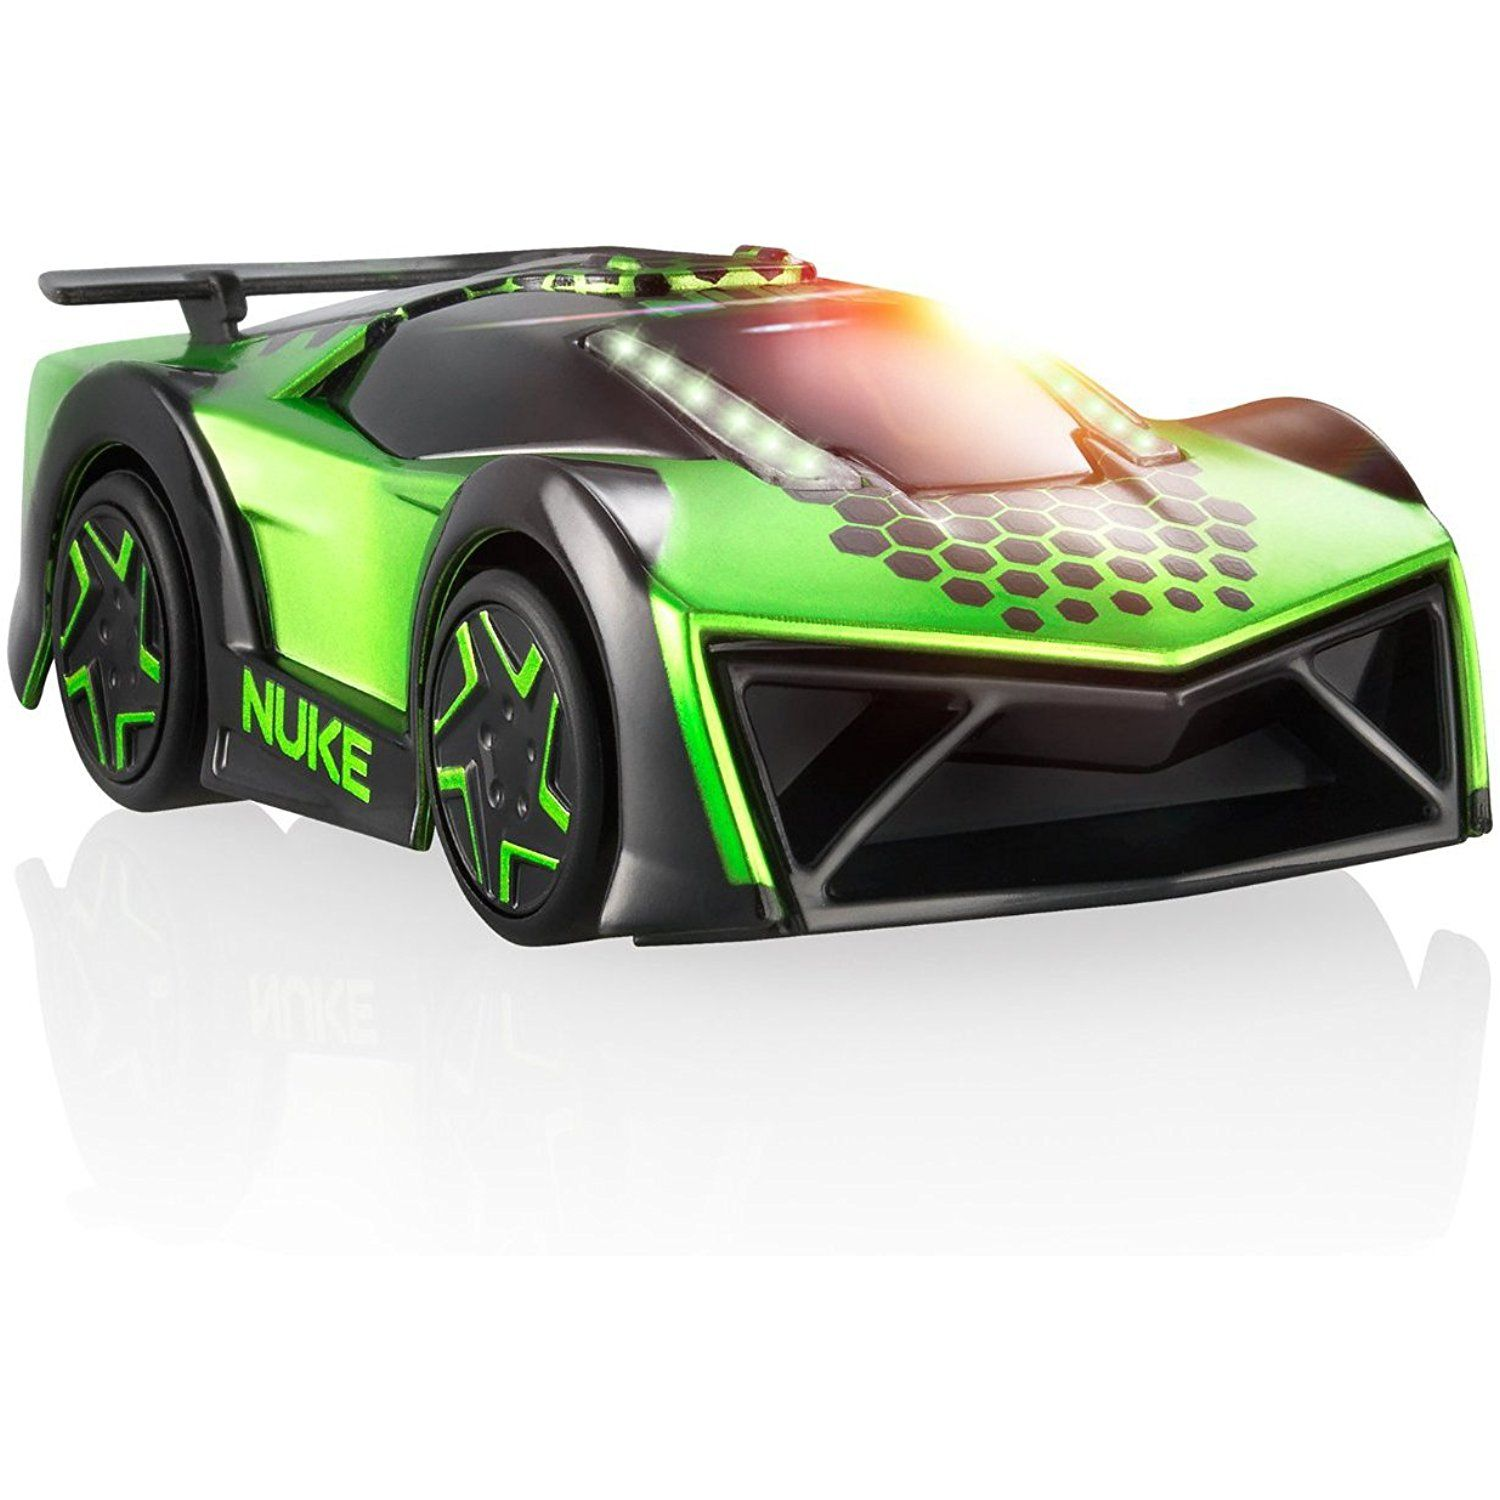 Anki OVERDRIVE Nuke Expansion Car * Click image to review